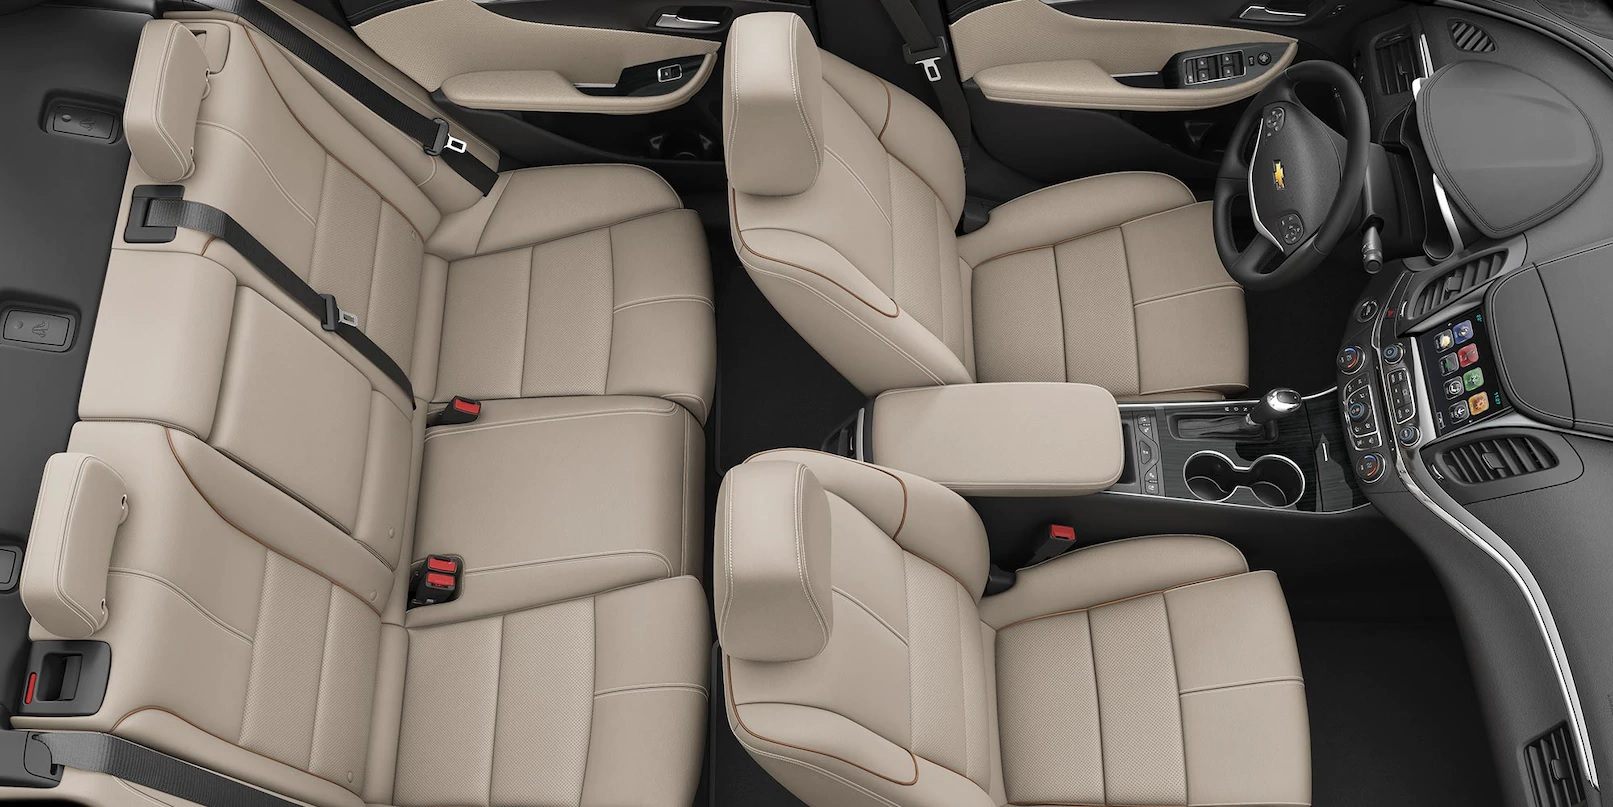 Interior of the 2019 Chevrolet Impala